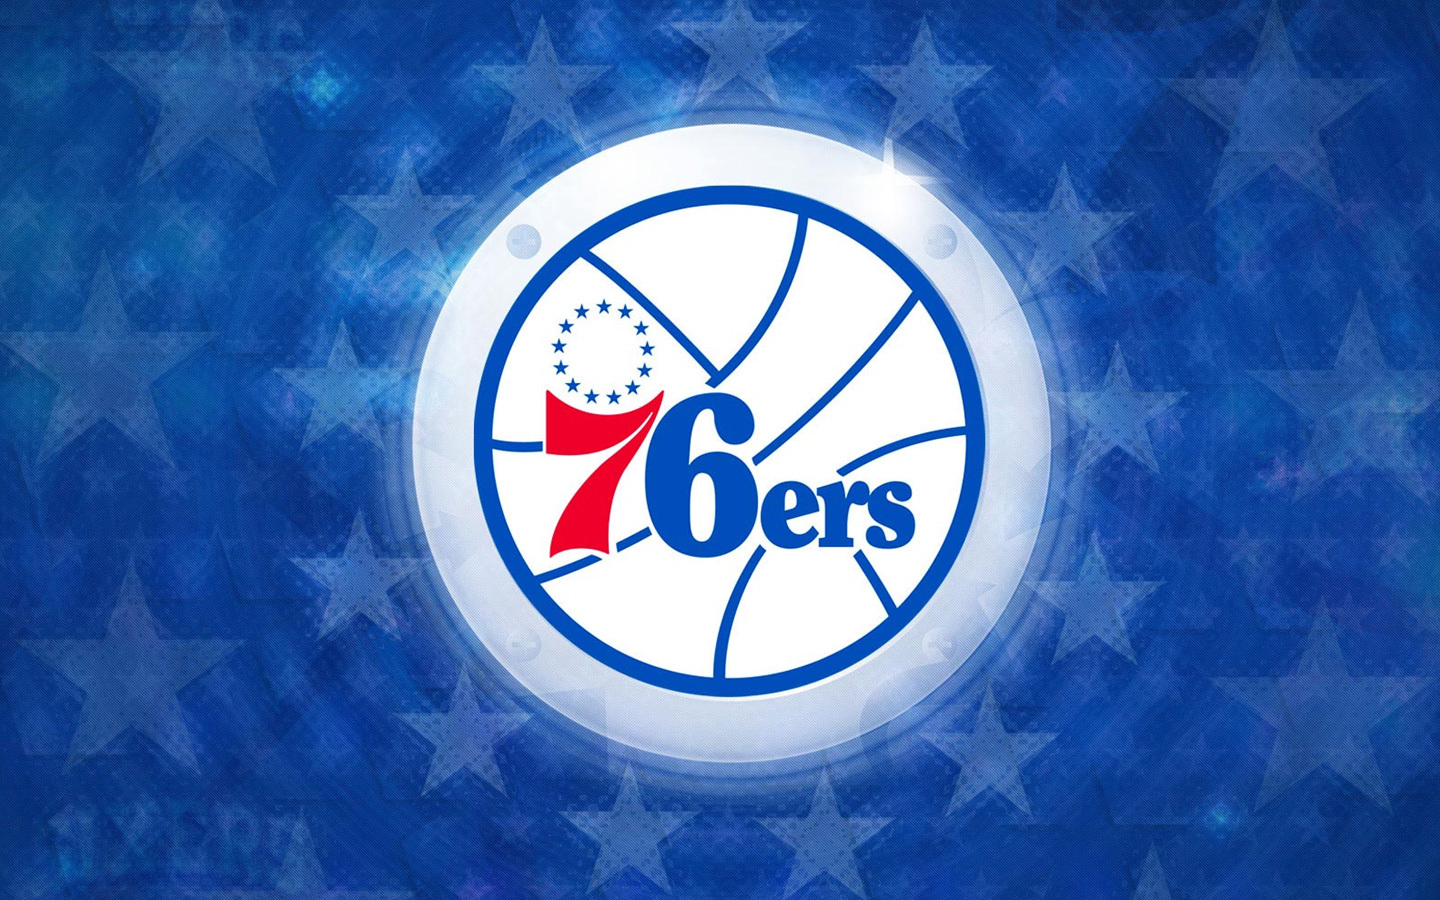 76ers Wallpaper